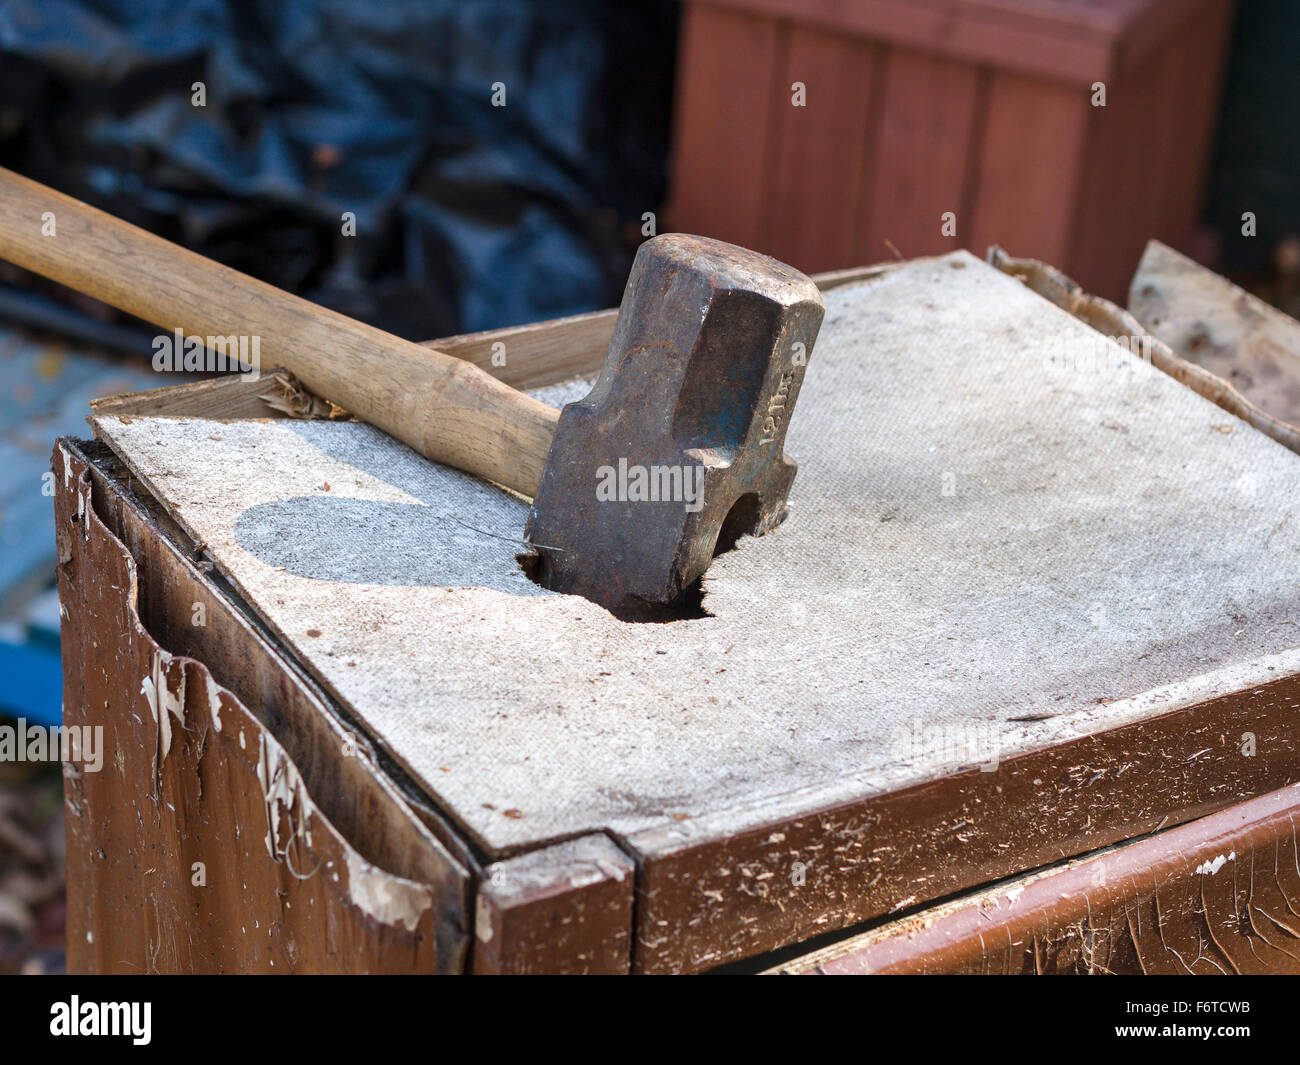 Sledgehammer embedded in a box. A heavy 12 pound sledge hammer smashed into an old worn cupboard box - Stock Image